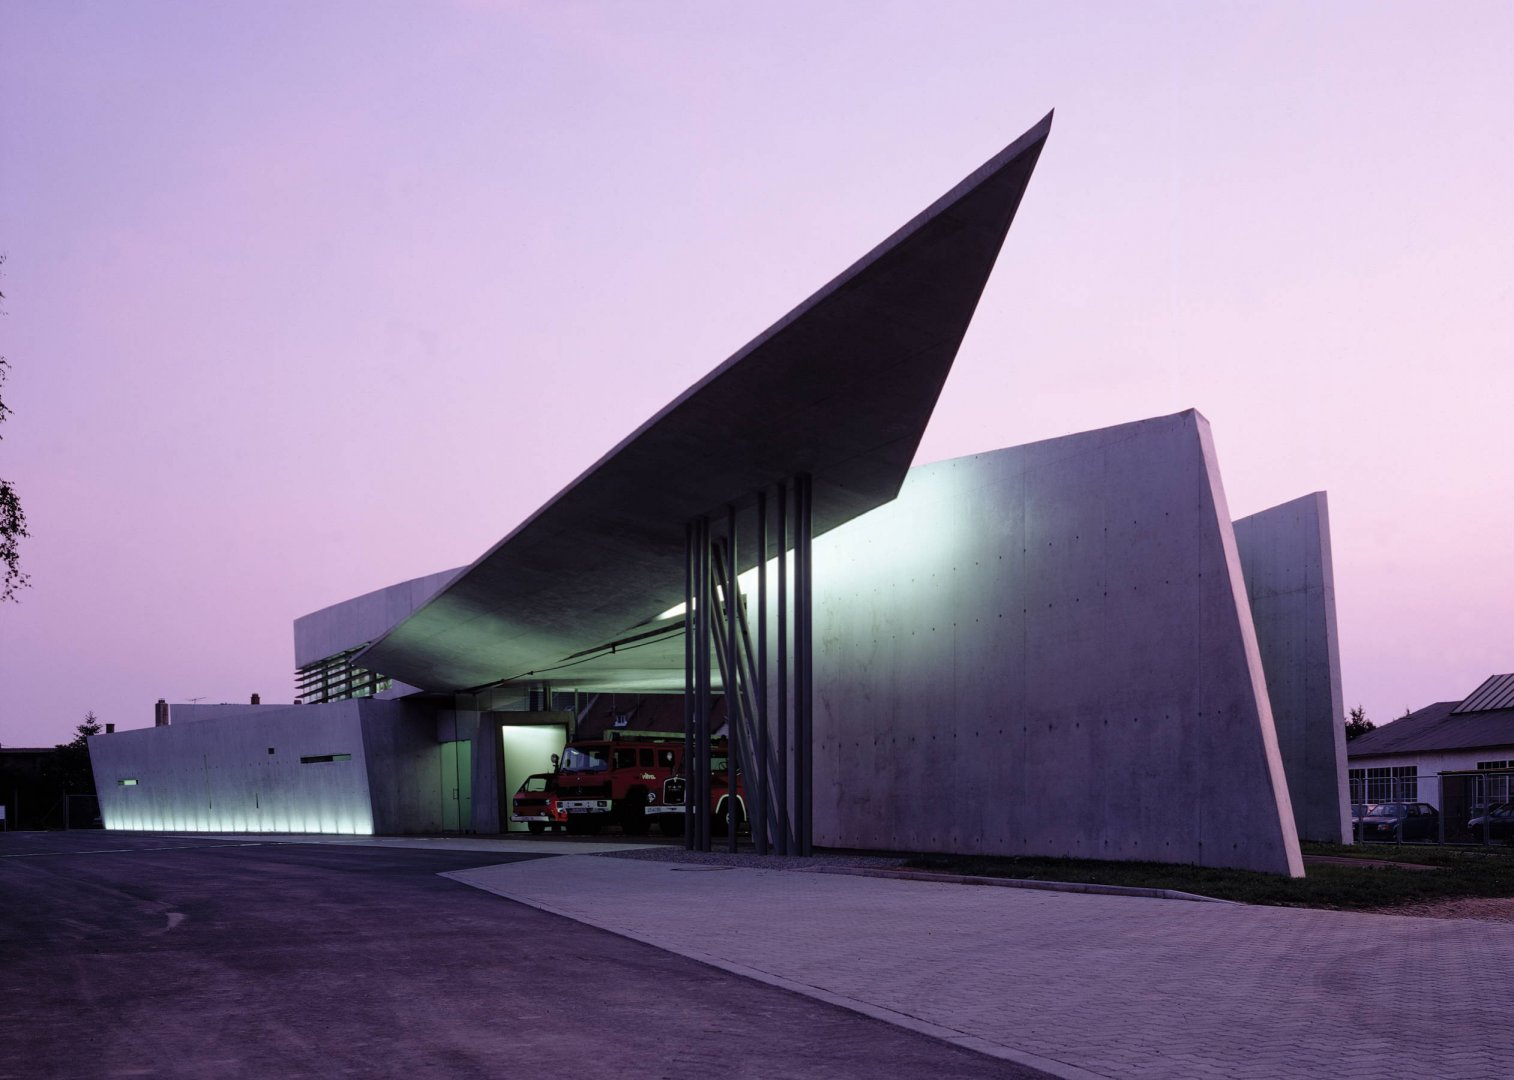 30 Projects That Define Zaha Hadid's Style - Vitra Fire Station, Germany